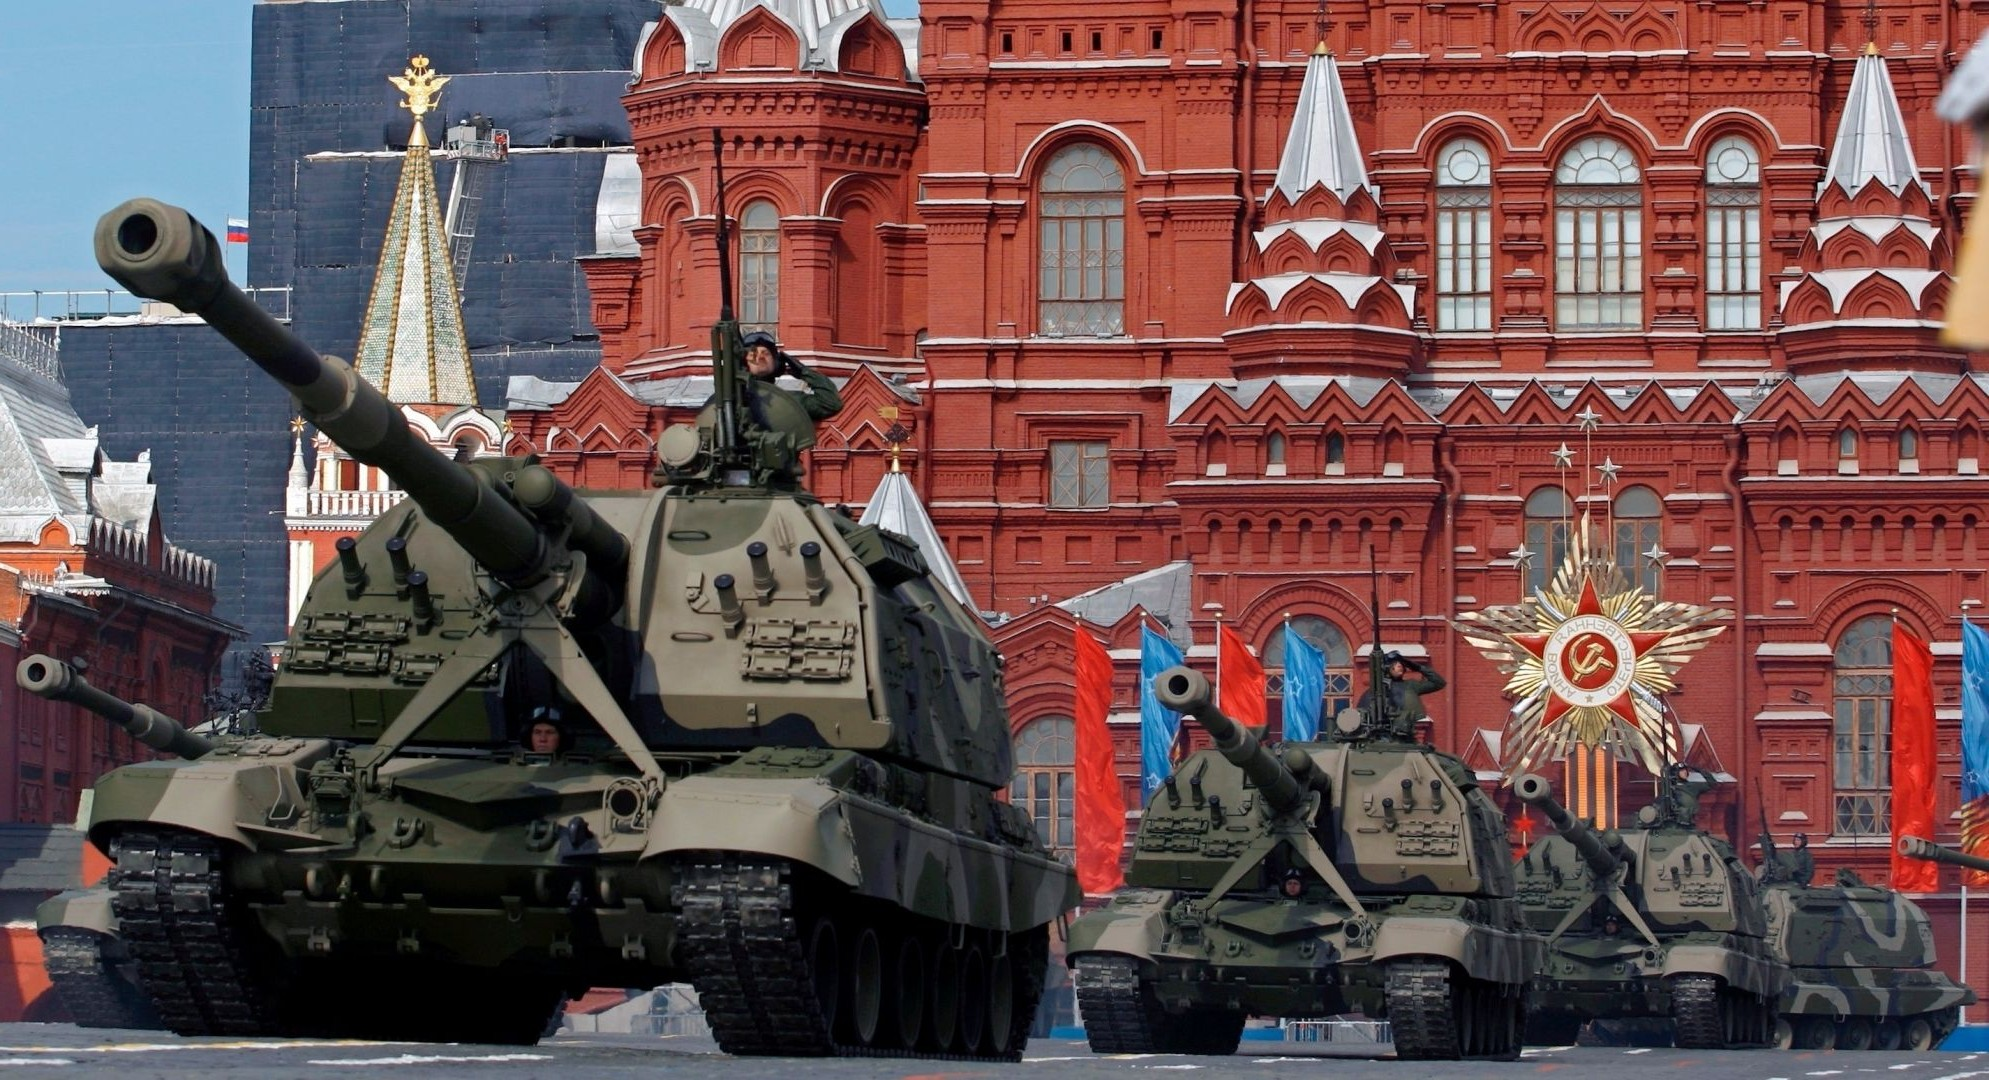 The parade formation area of Moscow